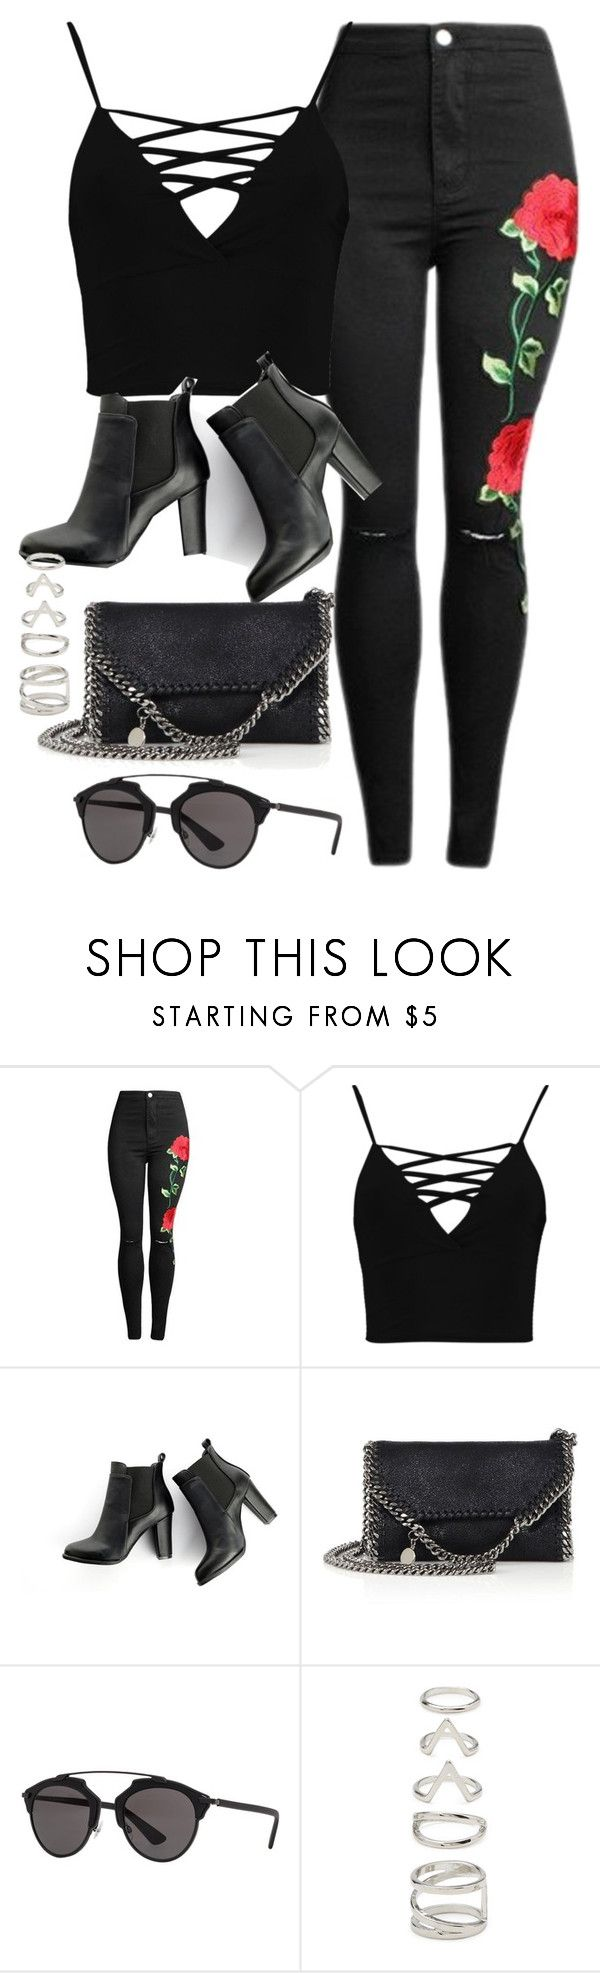 """""""Sin título #12258"""" by vany-alvarado ❤ liked on Polyvore featuring Boohoo, SWEET MANGO, STELLA McCARTNEY, Christian Dior and Forever 21"""